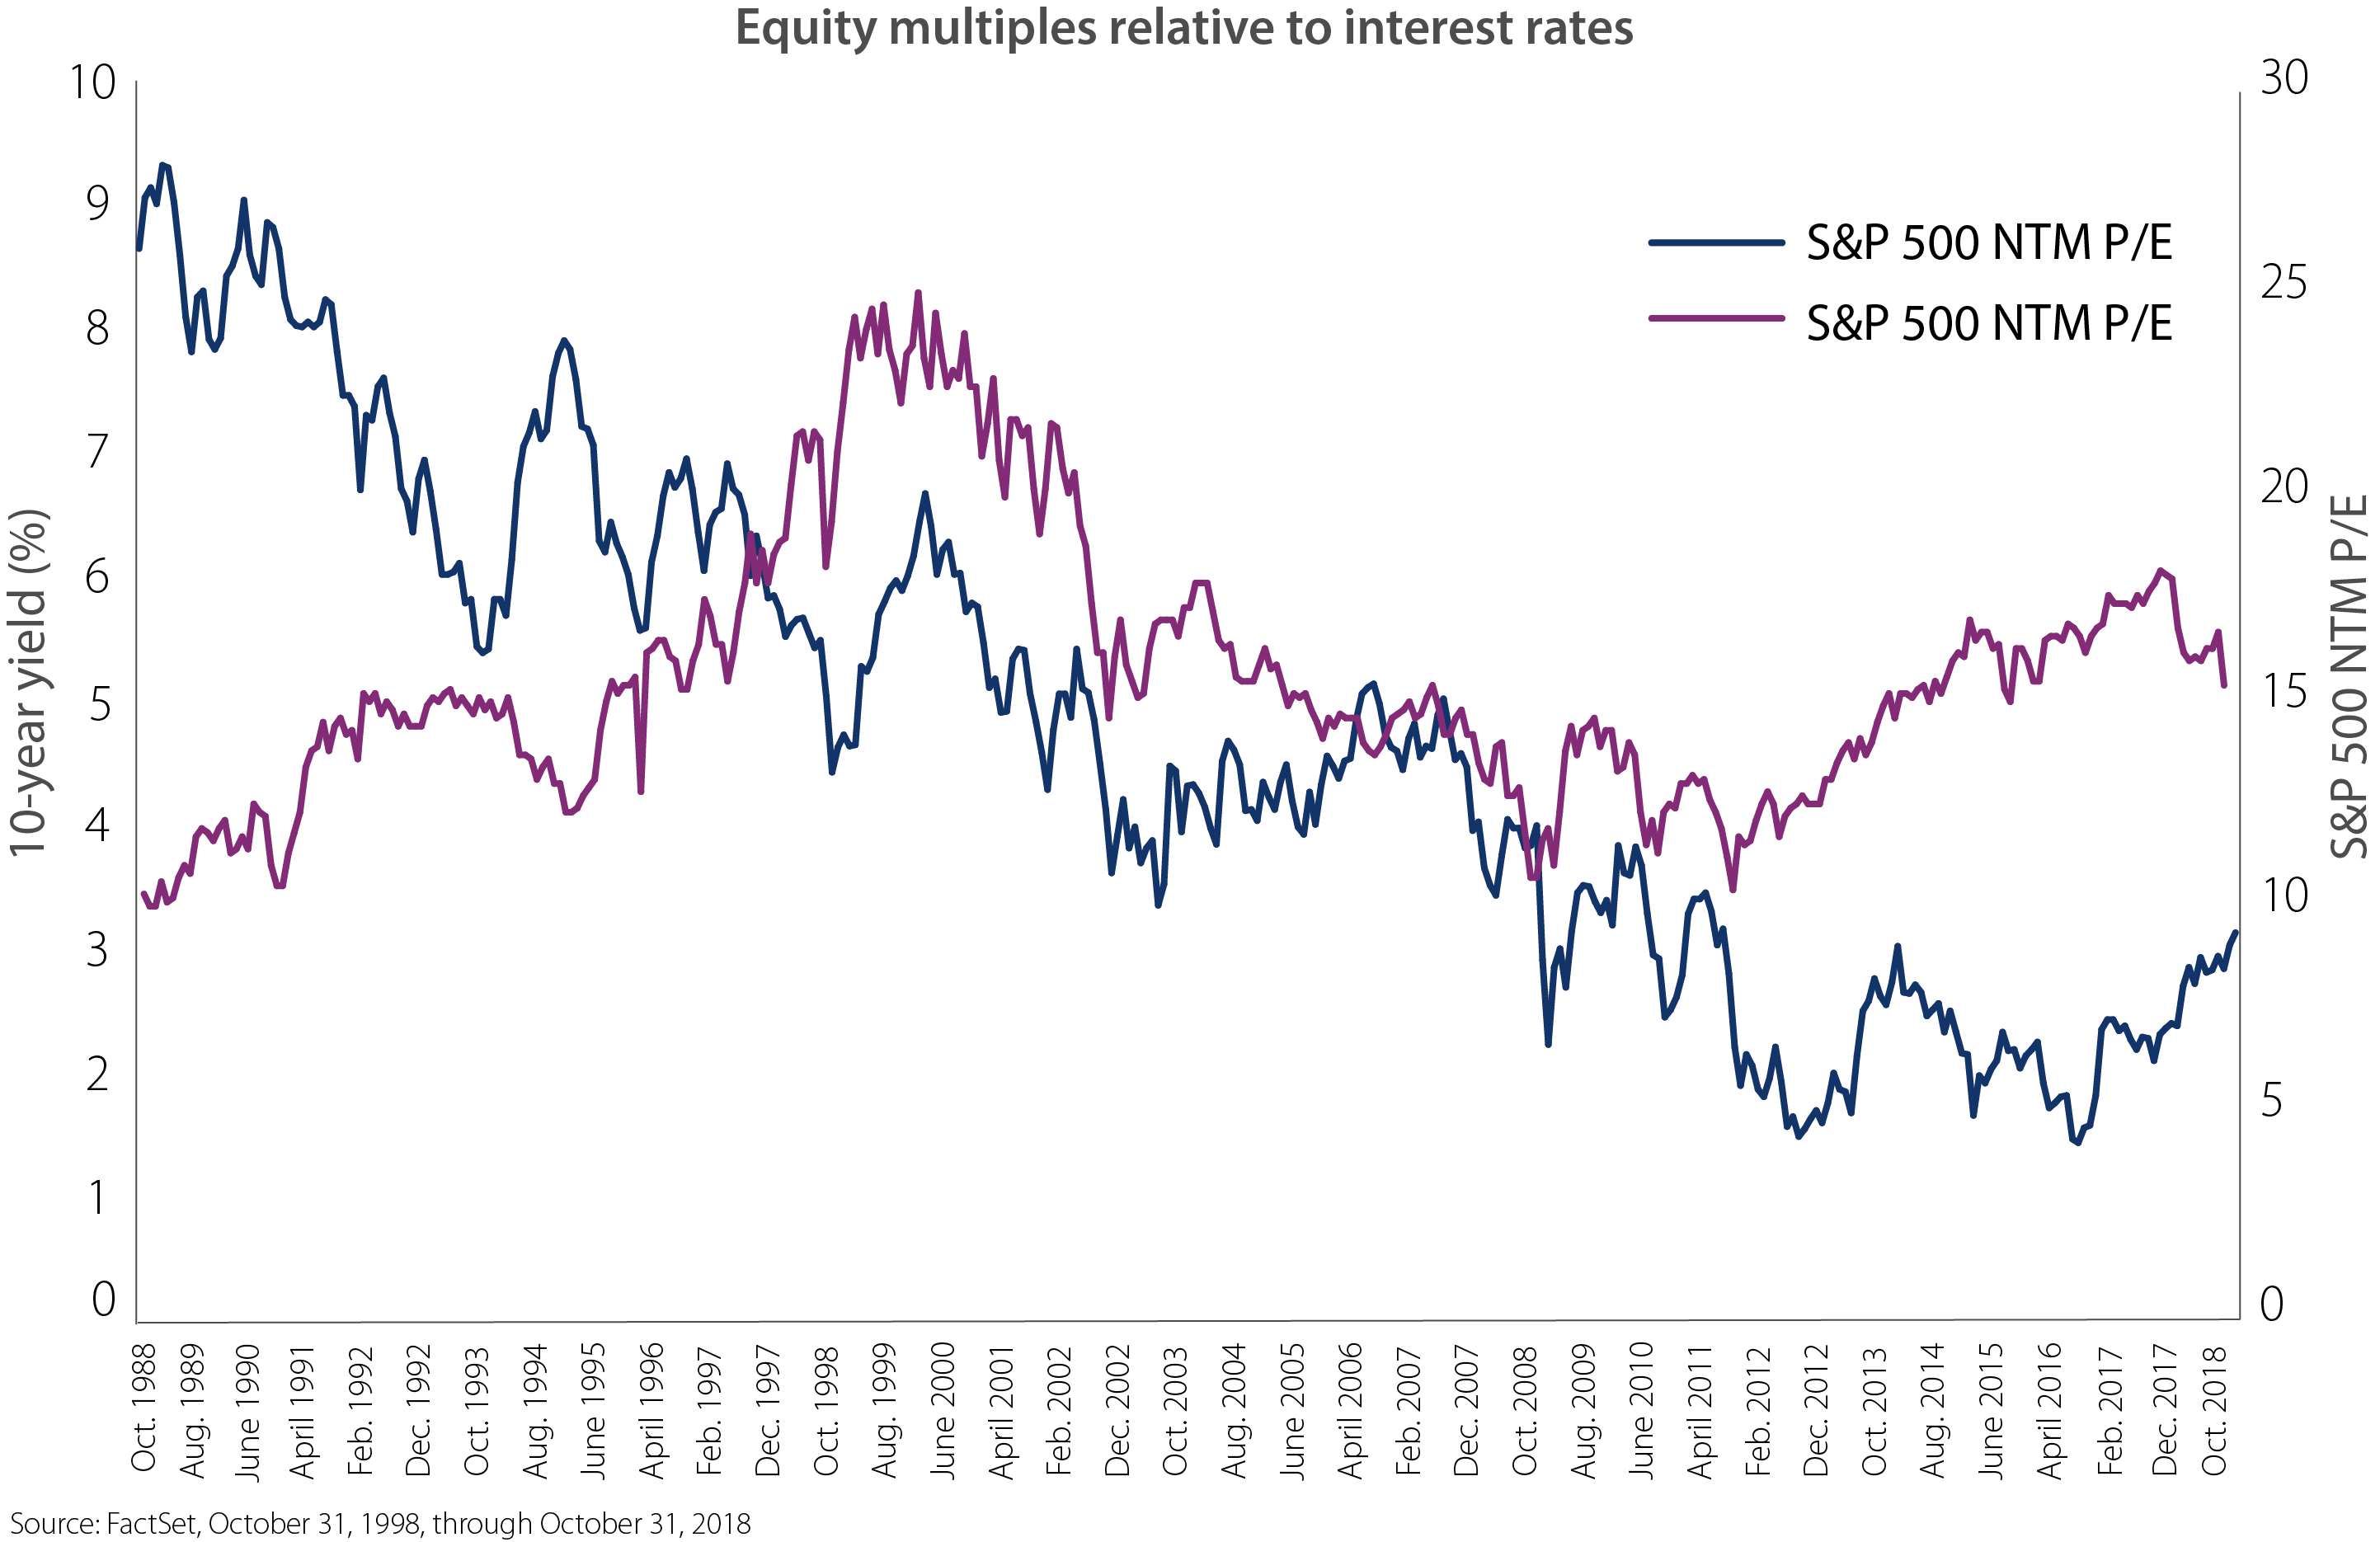 Equity multiples relative to interest rates. A study of valuation multiples during various interest rate environments shows that growth stock multiples have typically been expansionary as interest rates rise from low levels.